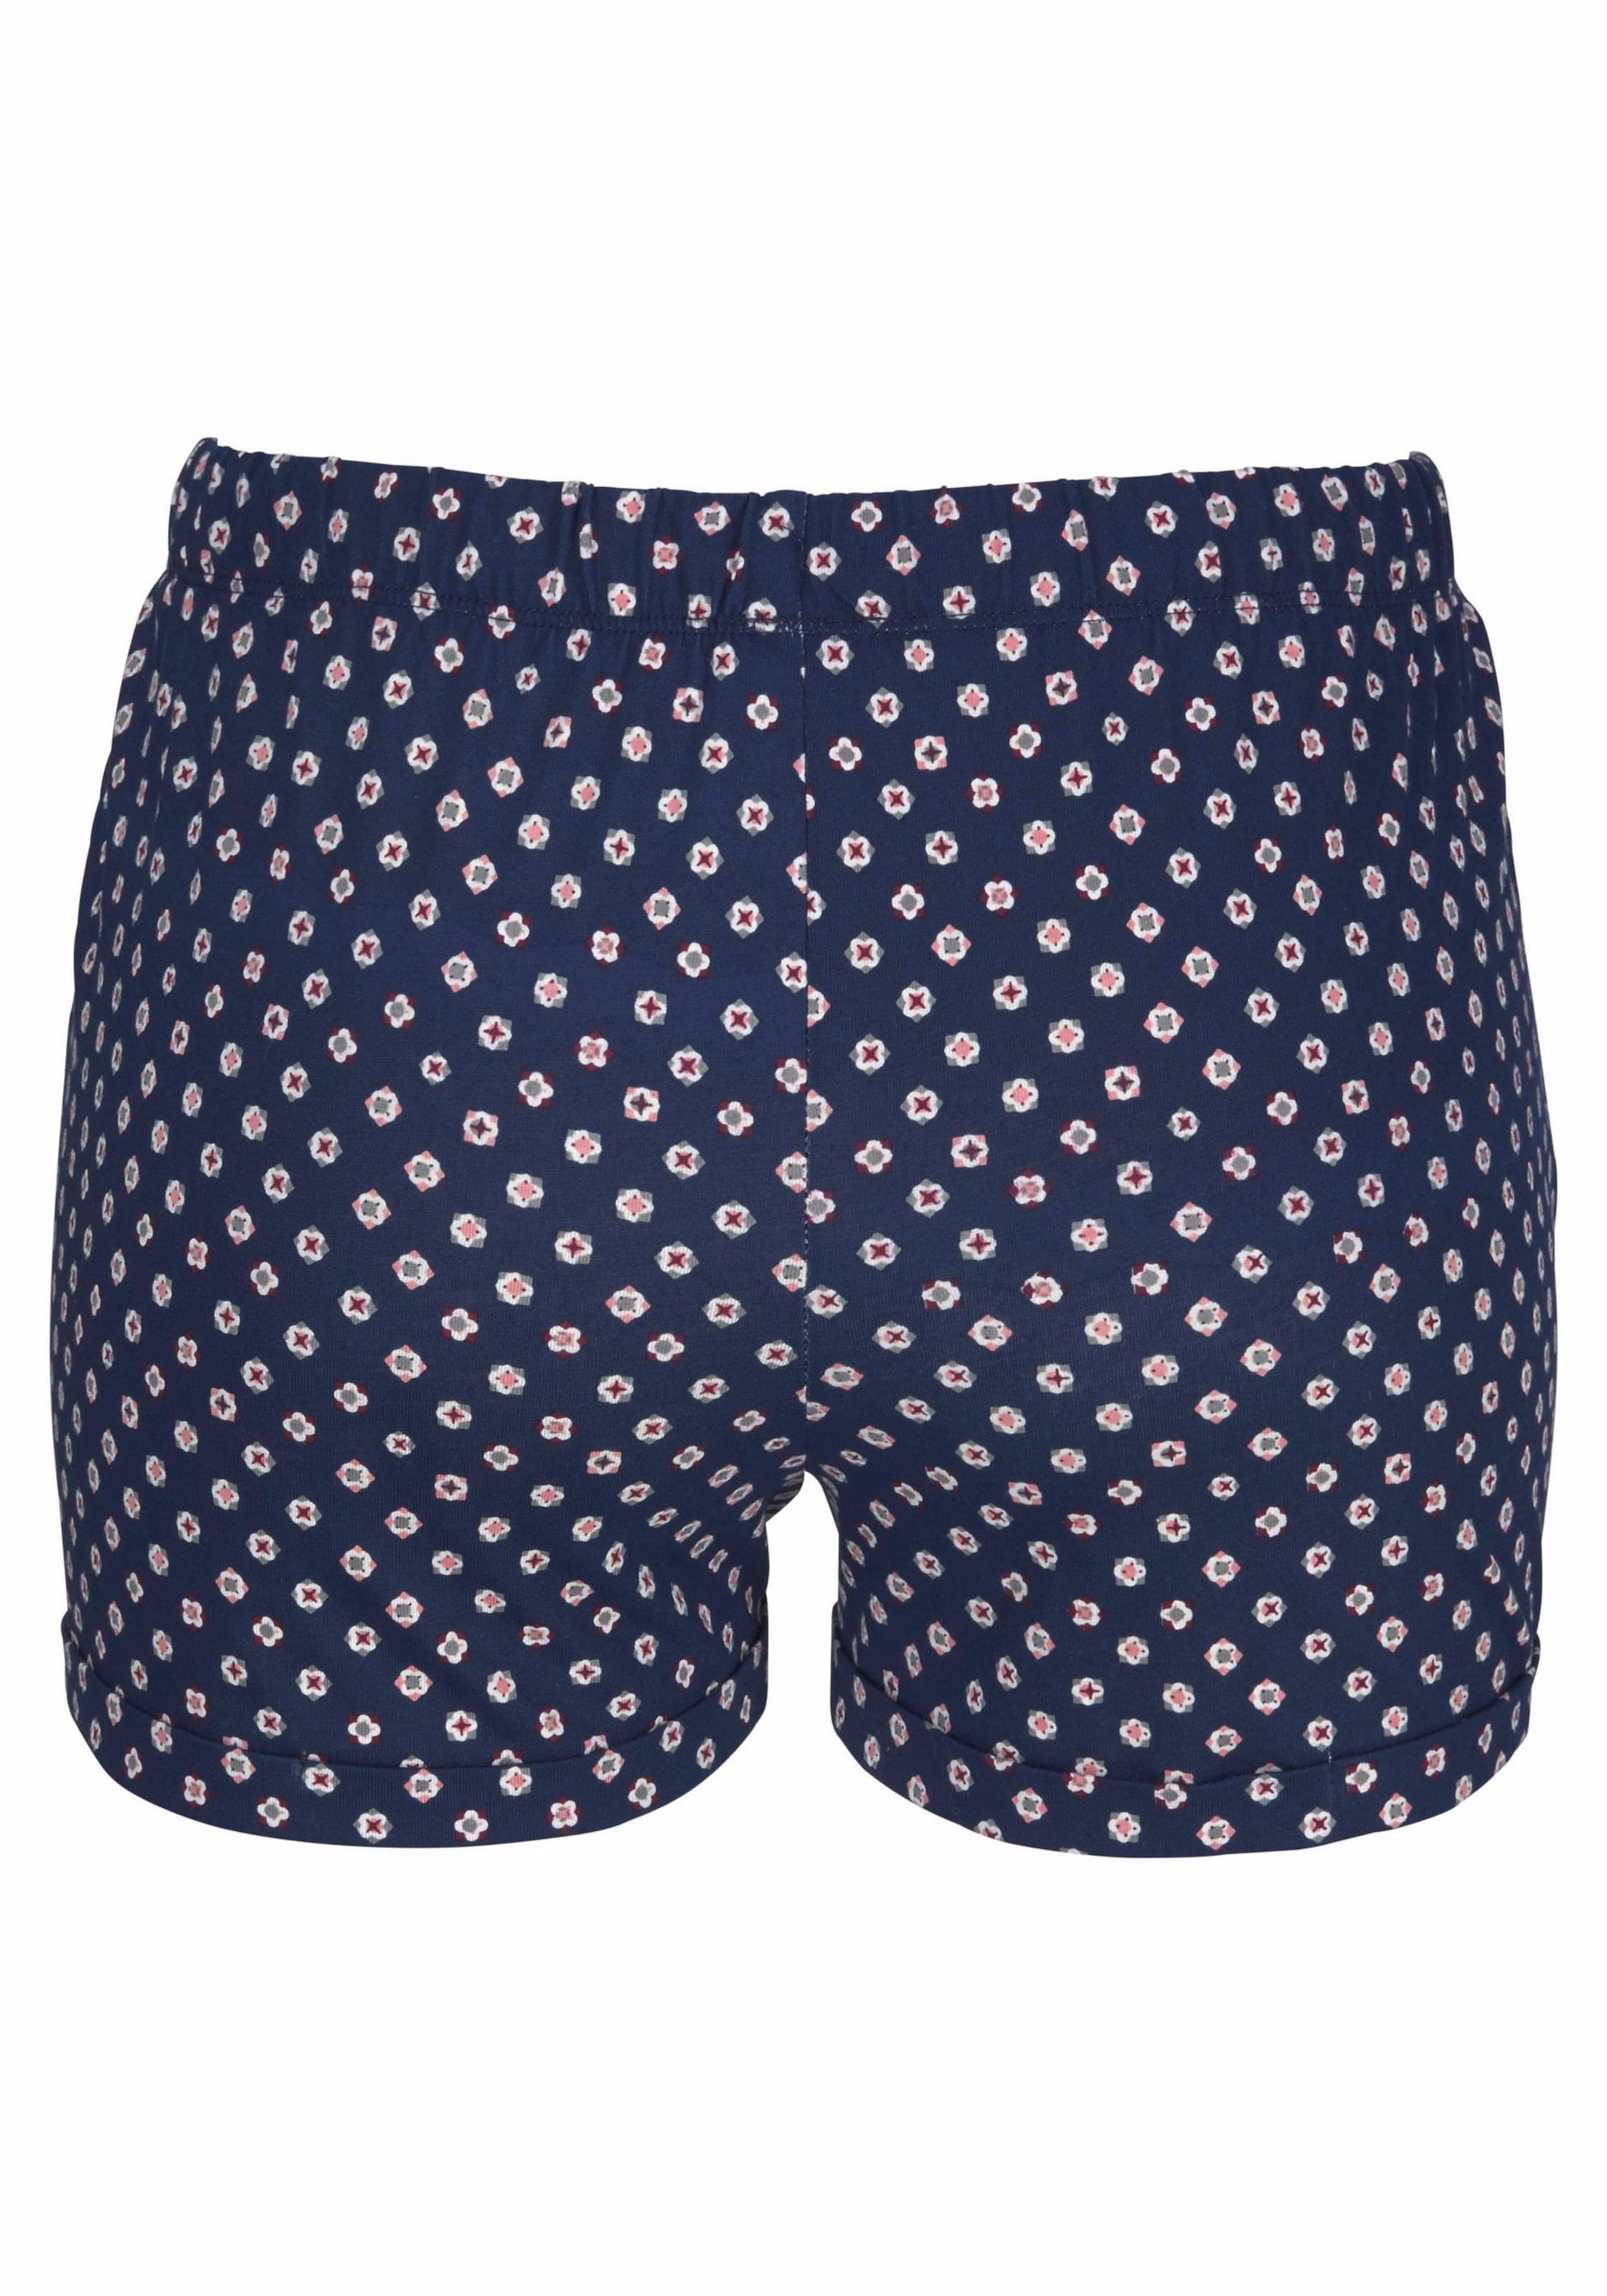 Fleur Allover Mit In Shorts muster BlauRosa Petite rCBdoex